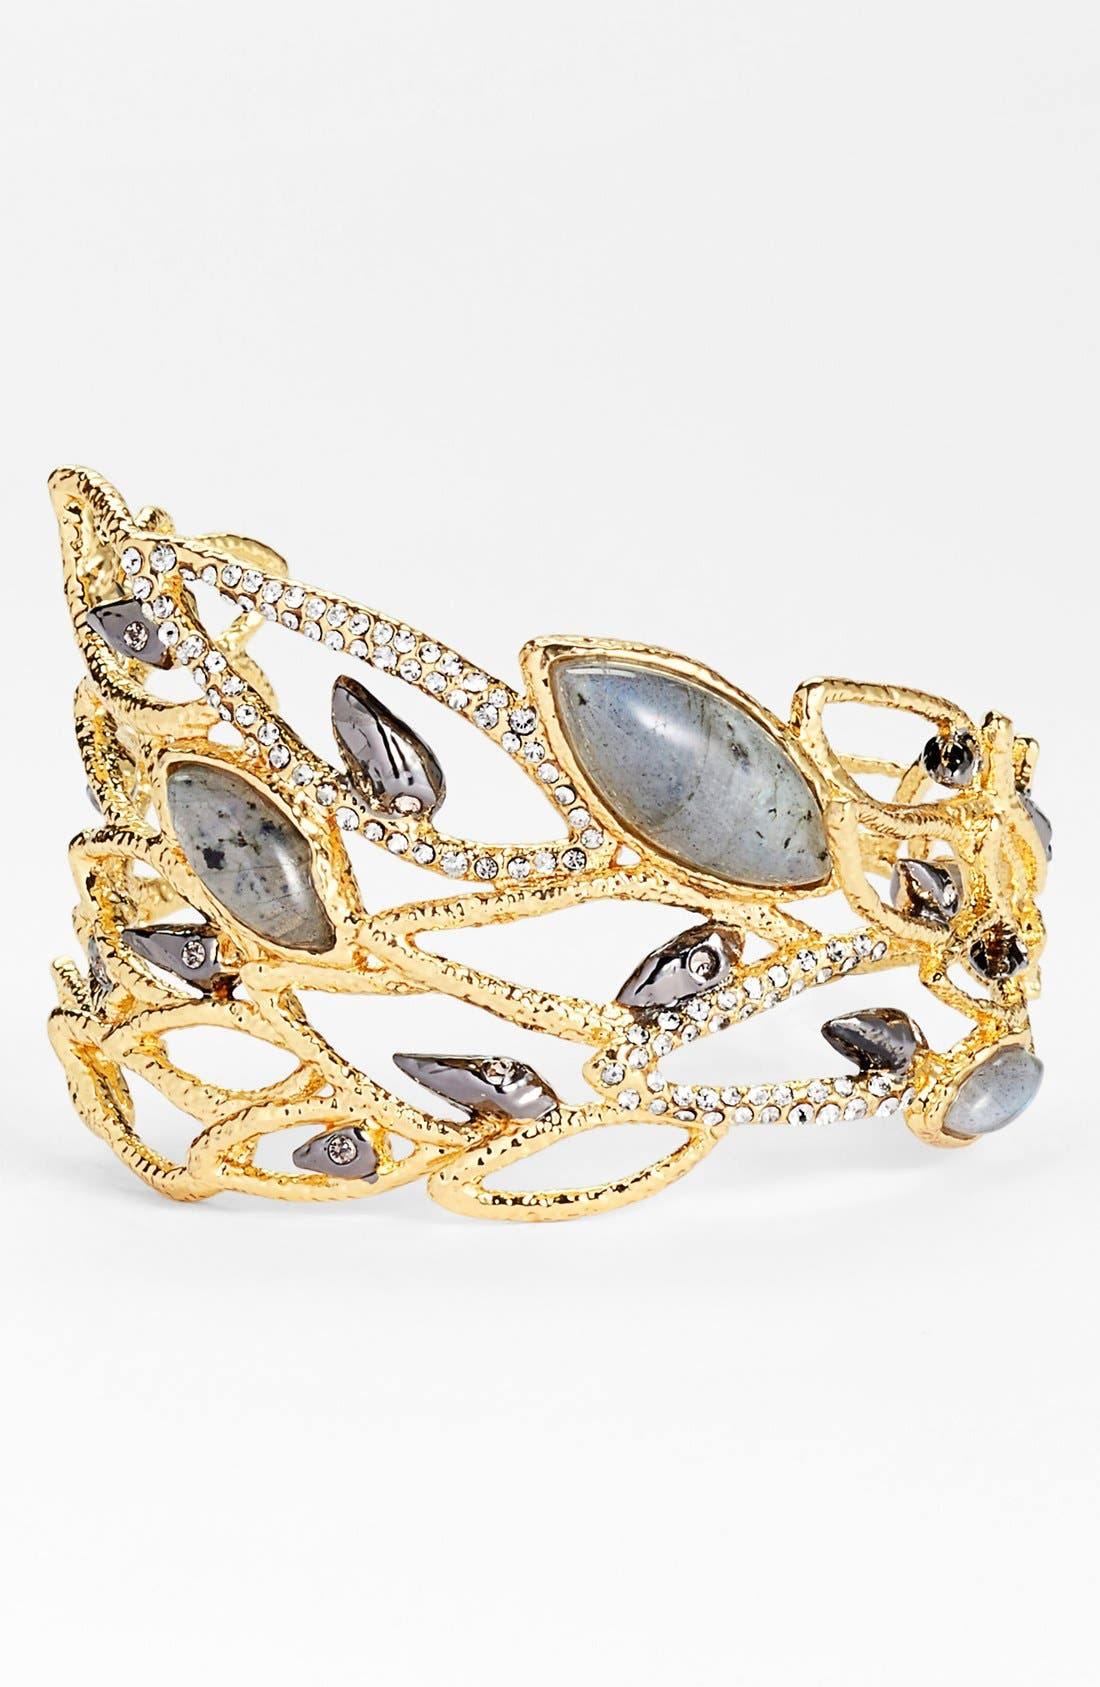 Alternate Image 1 Selected - Alexis Bittar 'Elements - Phoenix' Asymmetrical Cuff